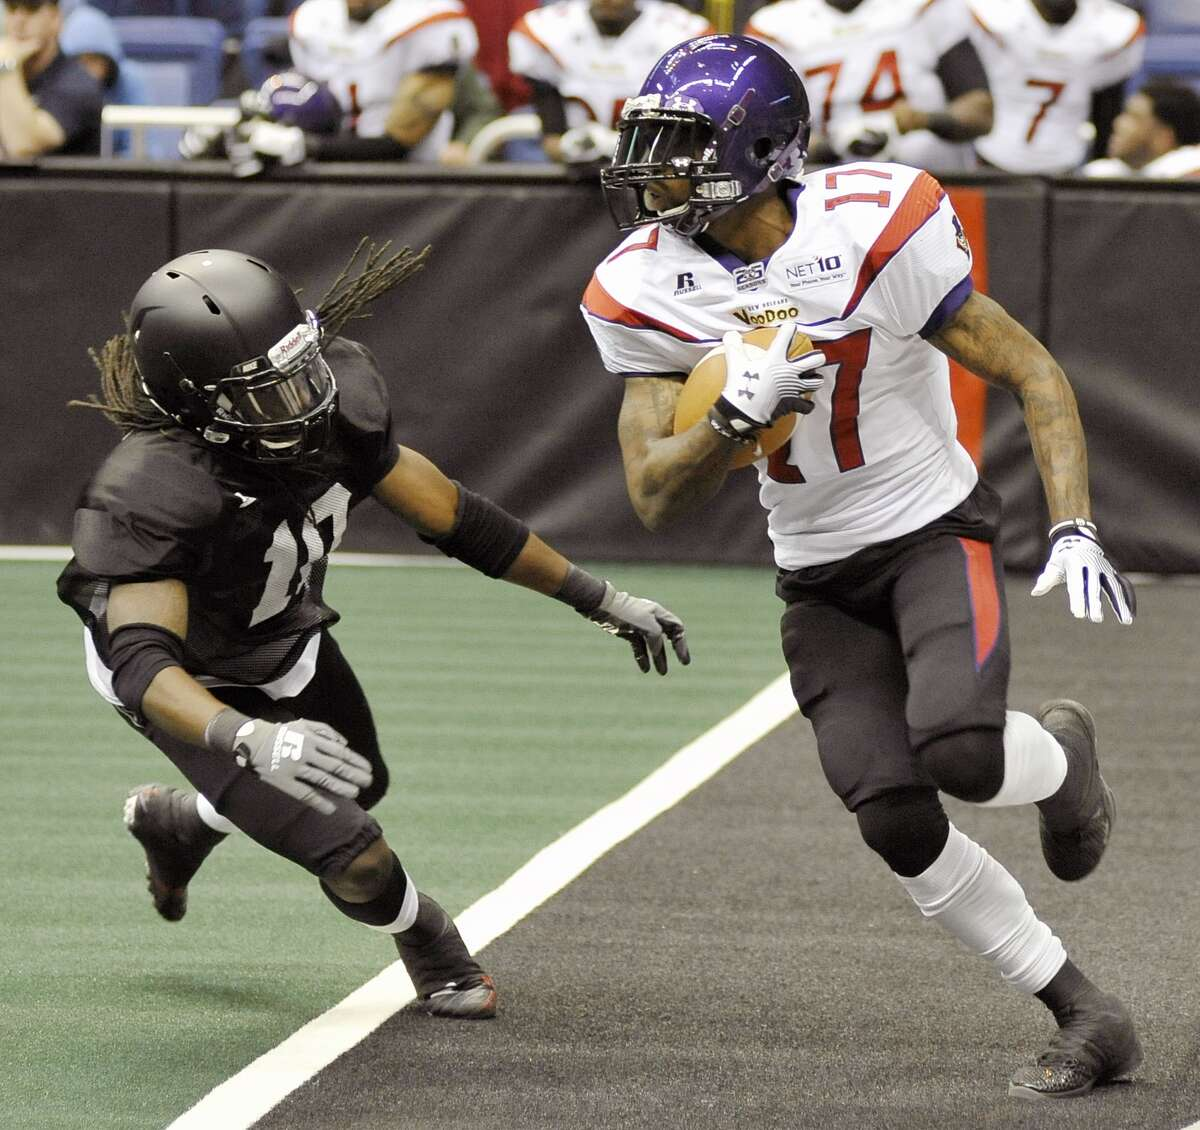 San Antonio Talons' Justin Hanna, left, runs to tackle New Orleans Voodoo's Chris Duvalt during an arena football game, Wednesday, March 6, 2013, at the Alamodome in San Antonio. (Darren Abate/For the Express-News)